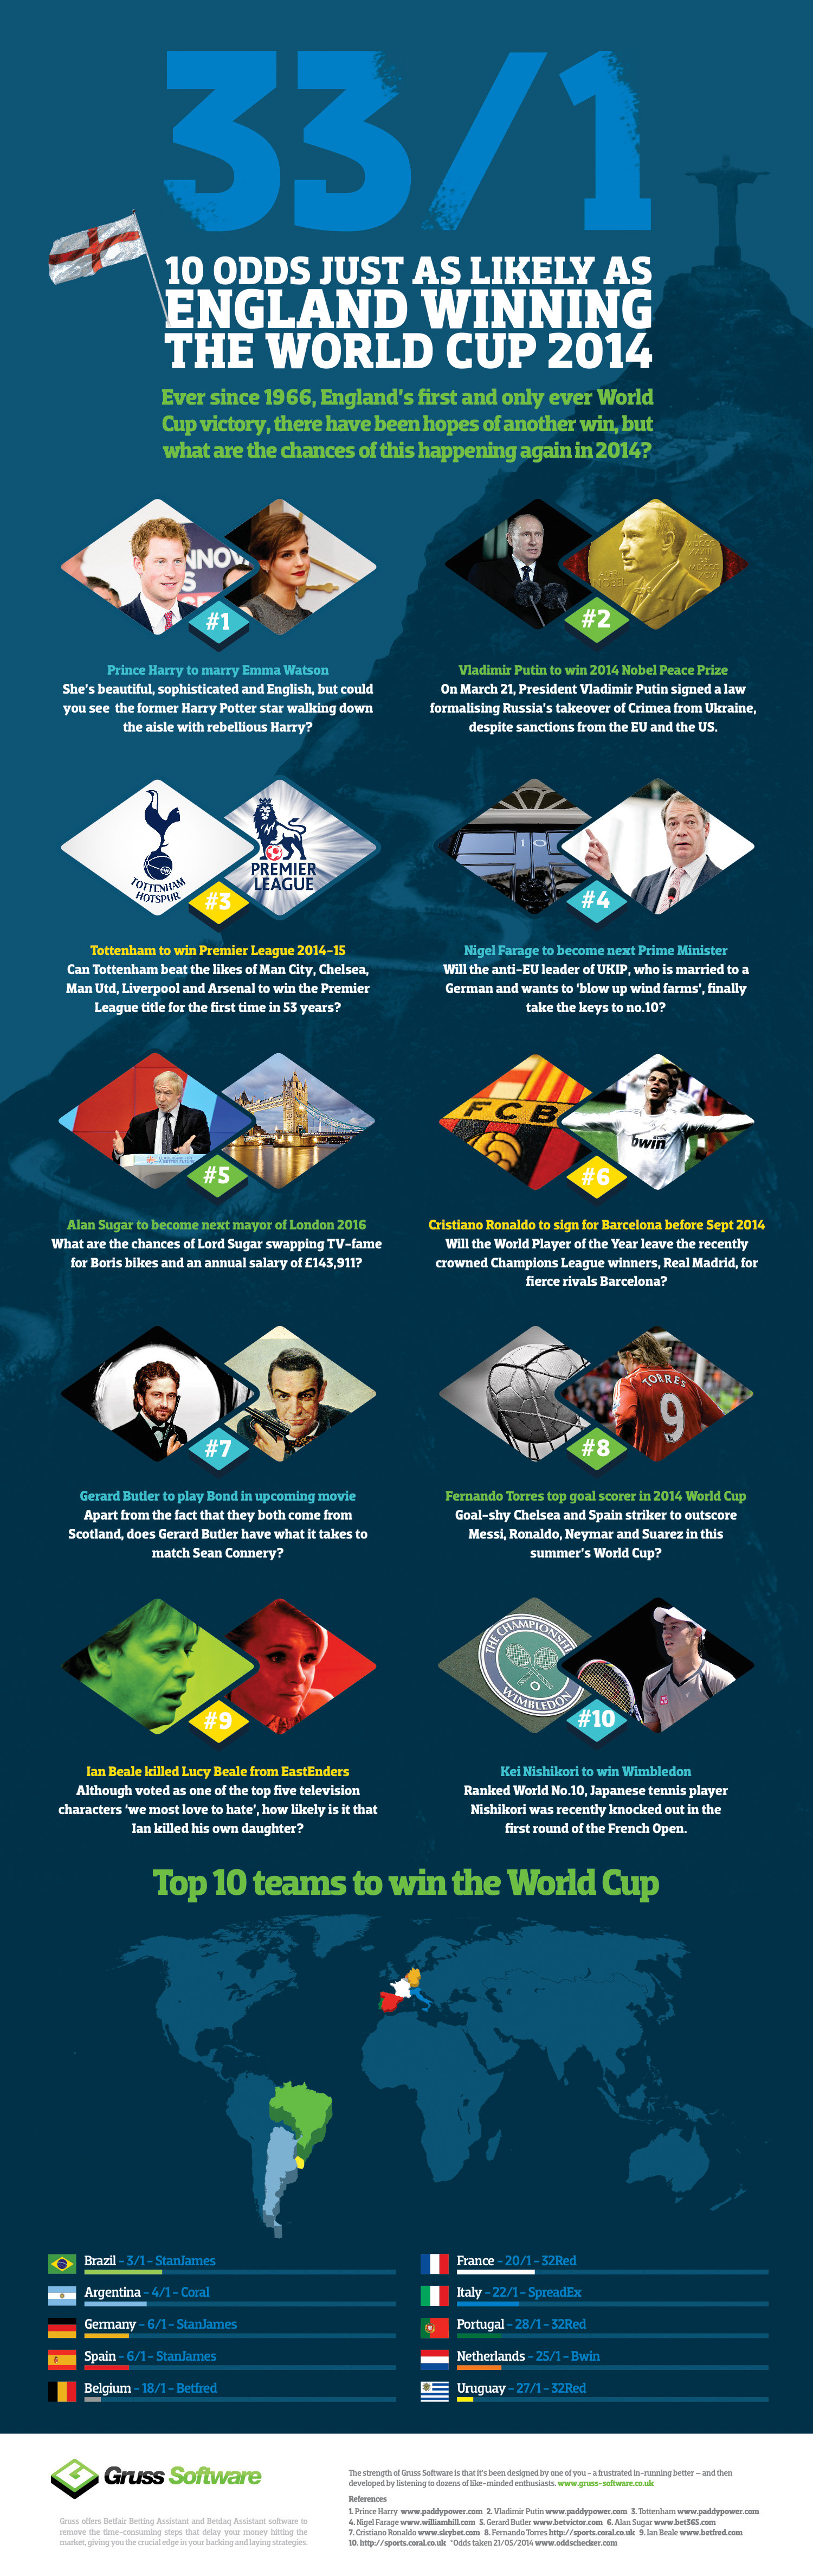 10 Odds Just as Likely as England Winning the World Cup 2014 Infographic